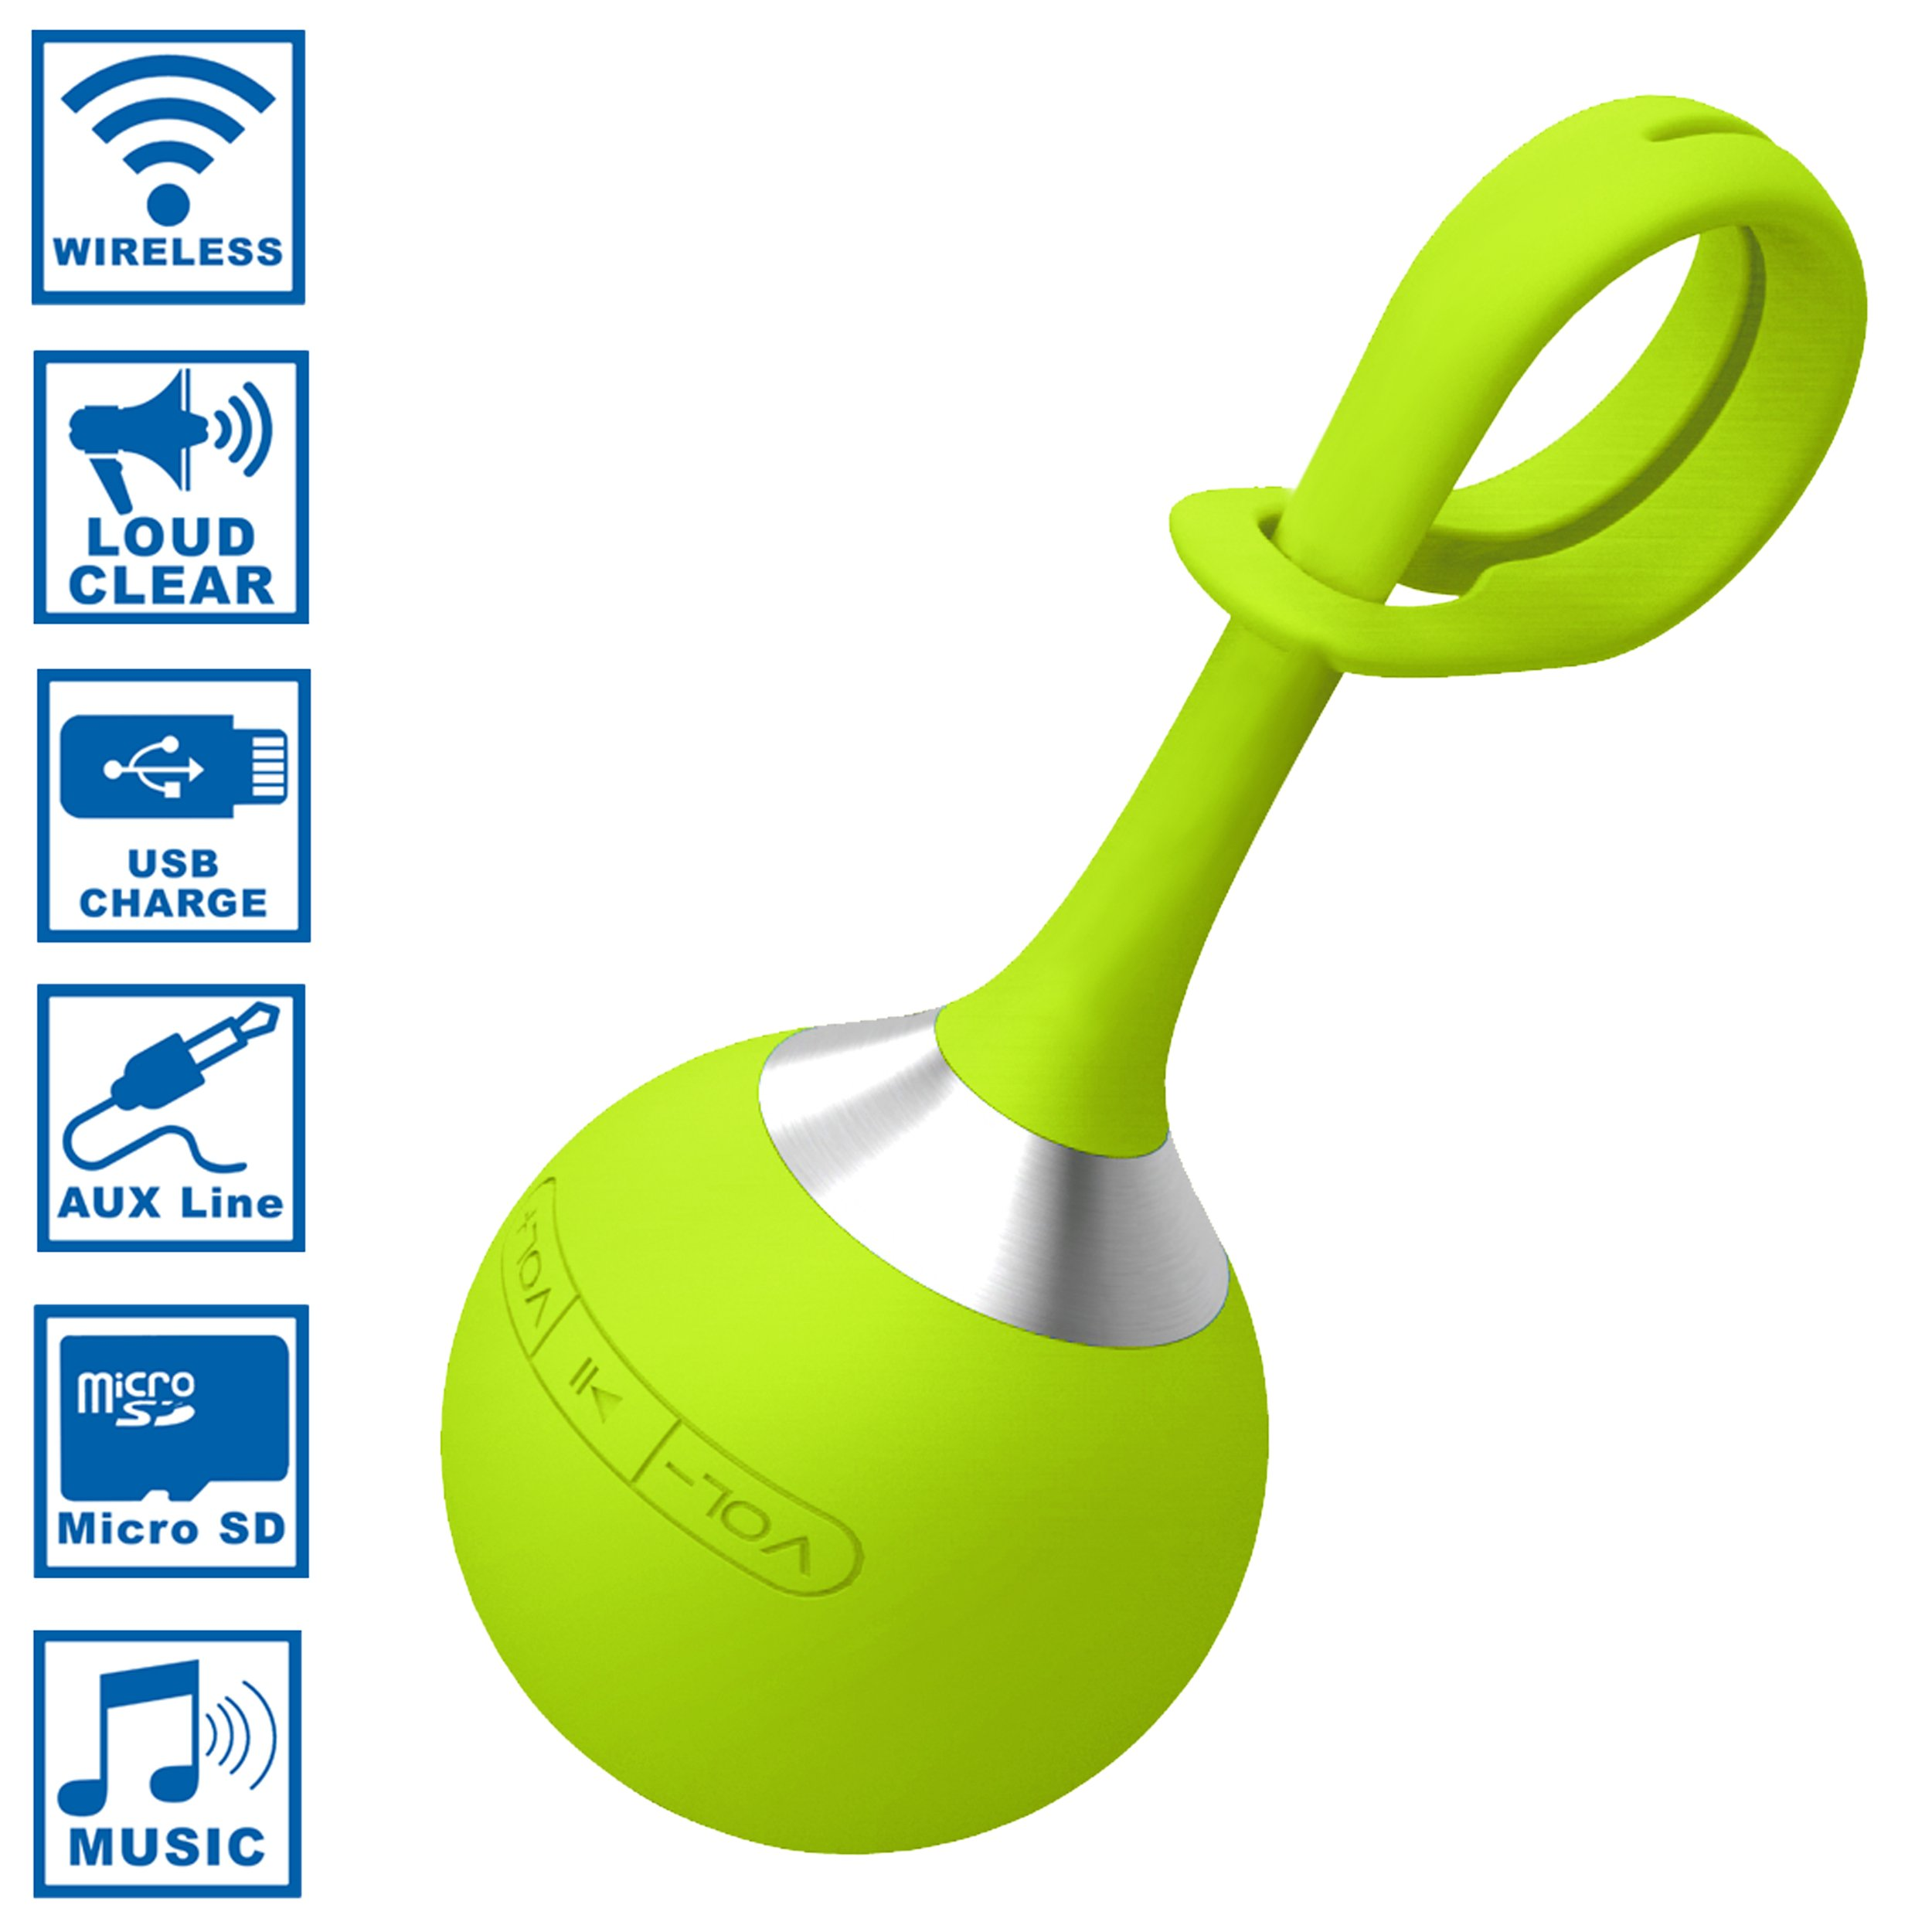 Funsparks EBSP1000-G - 2 In 1 Wireless Bluetooth Speaker Or MP3 Player - Water-Resistant, Portable, Mini (Green)